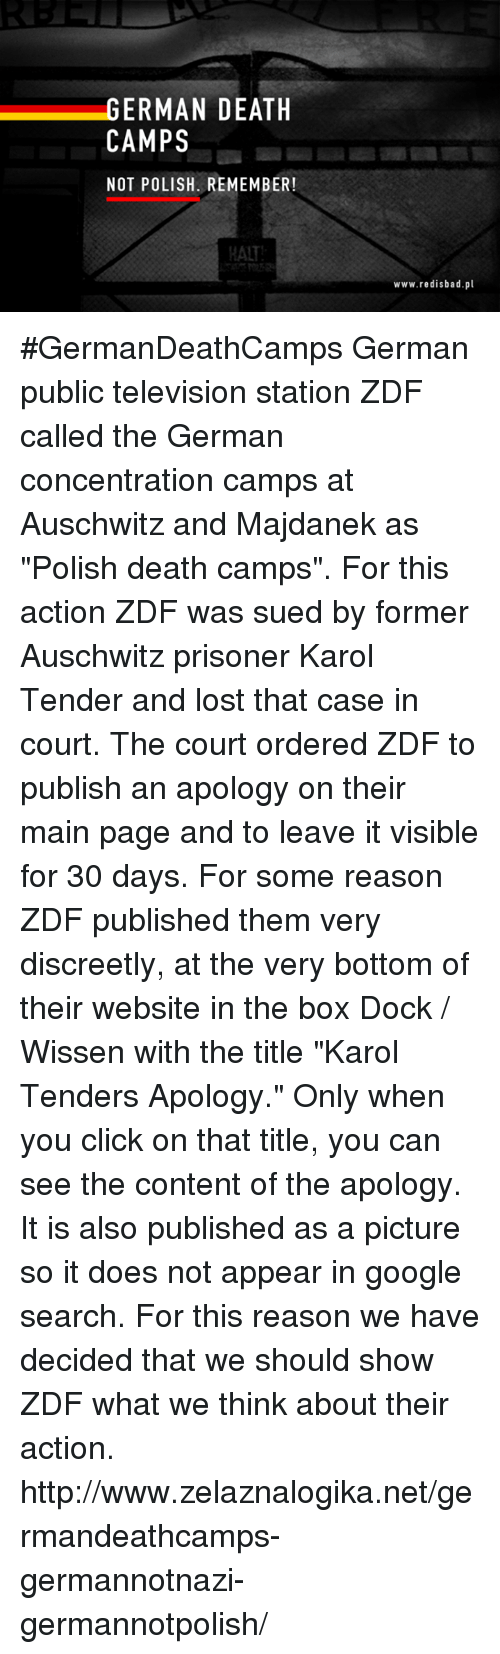 "Memes, Prison, and Auschwitz: GERMAN DEATH  CAMPS  NOT POLISH. REMEMBER!  www.redisbad.pl #GermanDeathCamps  German public television station ZDF called the German concentration camps at Auschwitz and Majdanek as ""Polish death camps"". For this action ZDF was sued by former Auschwitz prisoner Karol Tender and lost that case in court. The court ordered ZDF to publish an apology on their main page and to leave it visible for 30 days.  For some reason ZDF published them very discreetly, at the very bottom of their website in the box Dock / Wissen with the title ""Karol Tenders Apology."" Only when you click on that title, you can see the content of the apology. It is also published as a picture so it does not appear in google search.  For this reason we have decided that we should show ZDF what we think about their action.  http://www.zelaznalogika.net/germandeathcamps-germannotnazi-germannotpolish/"